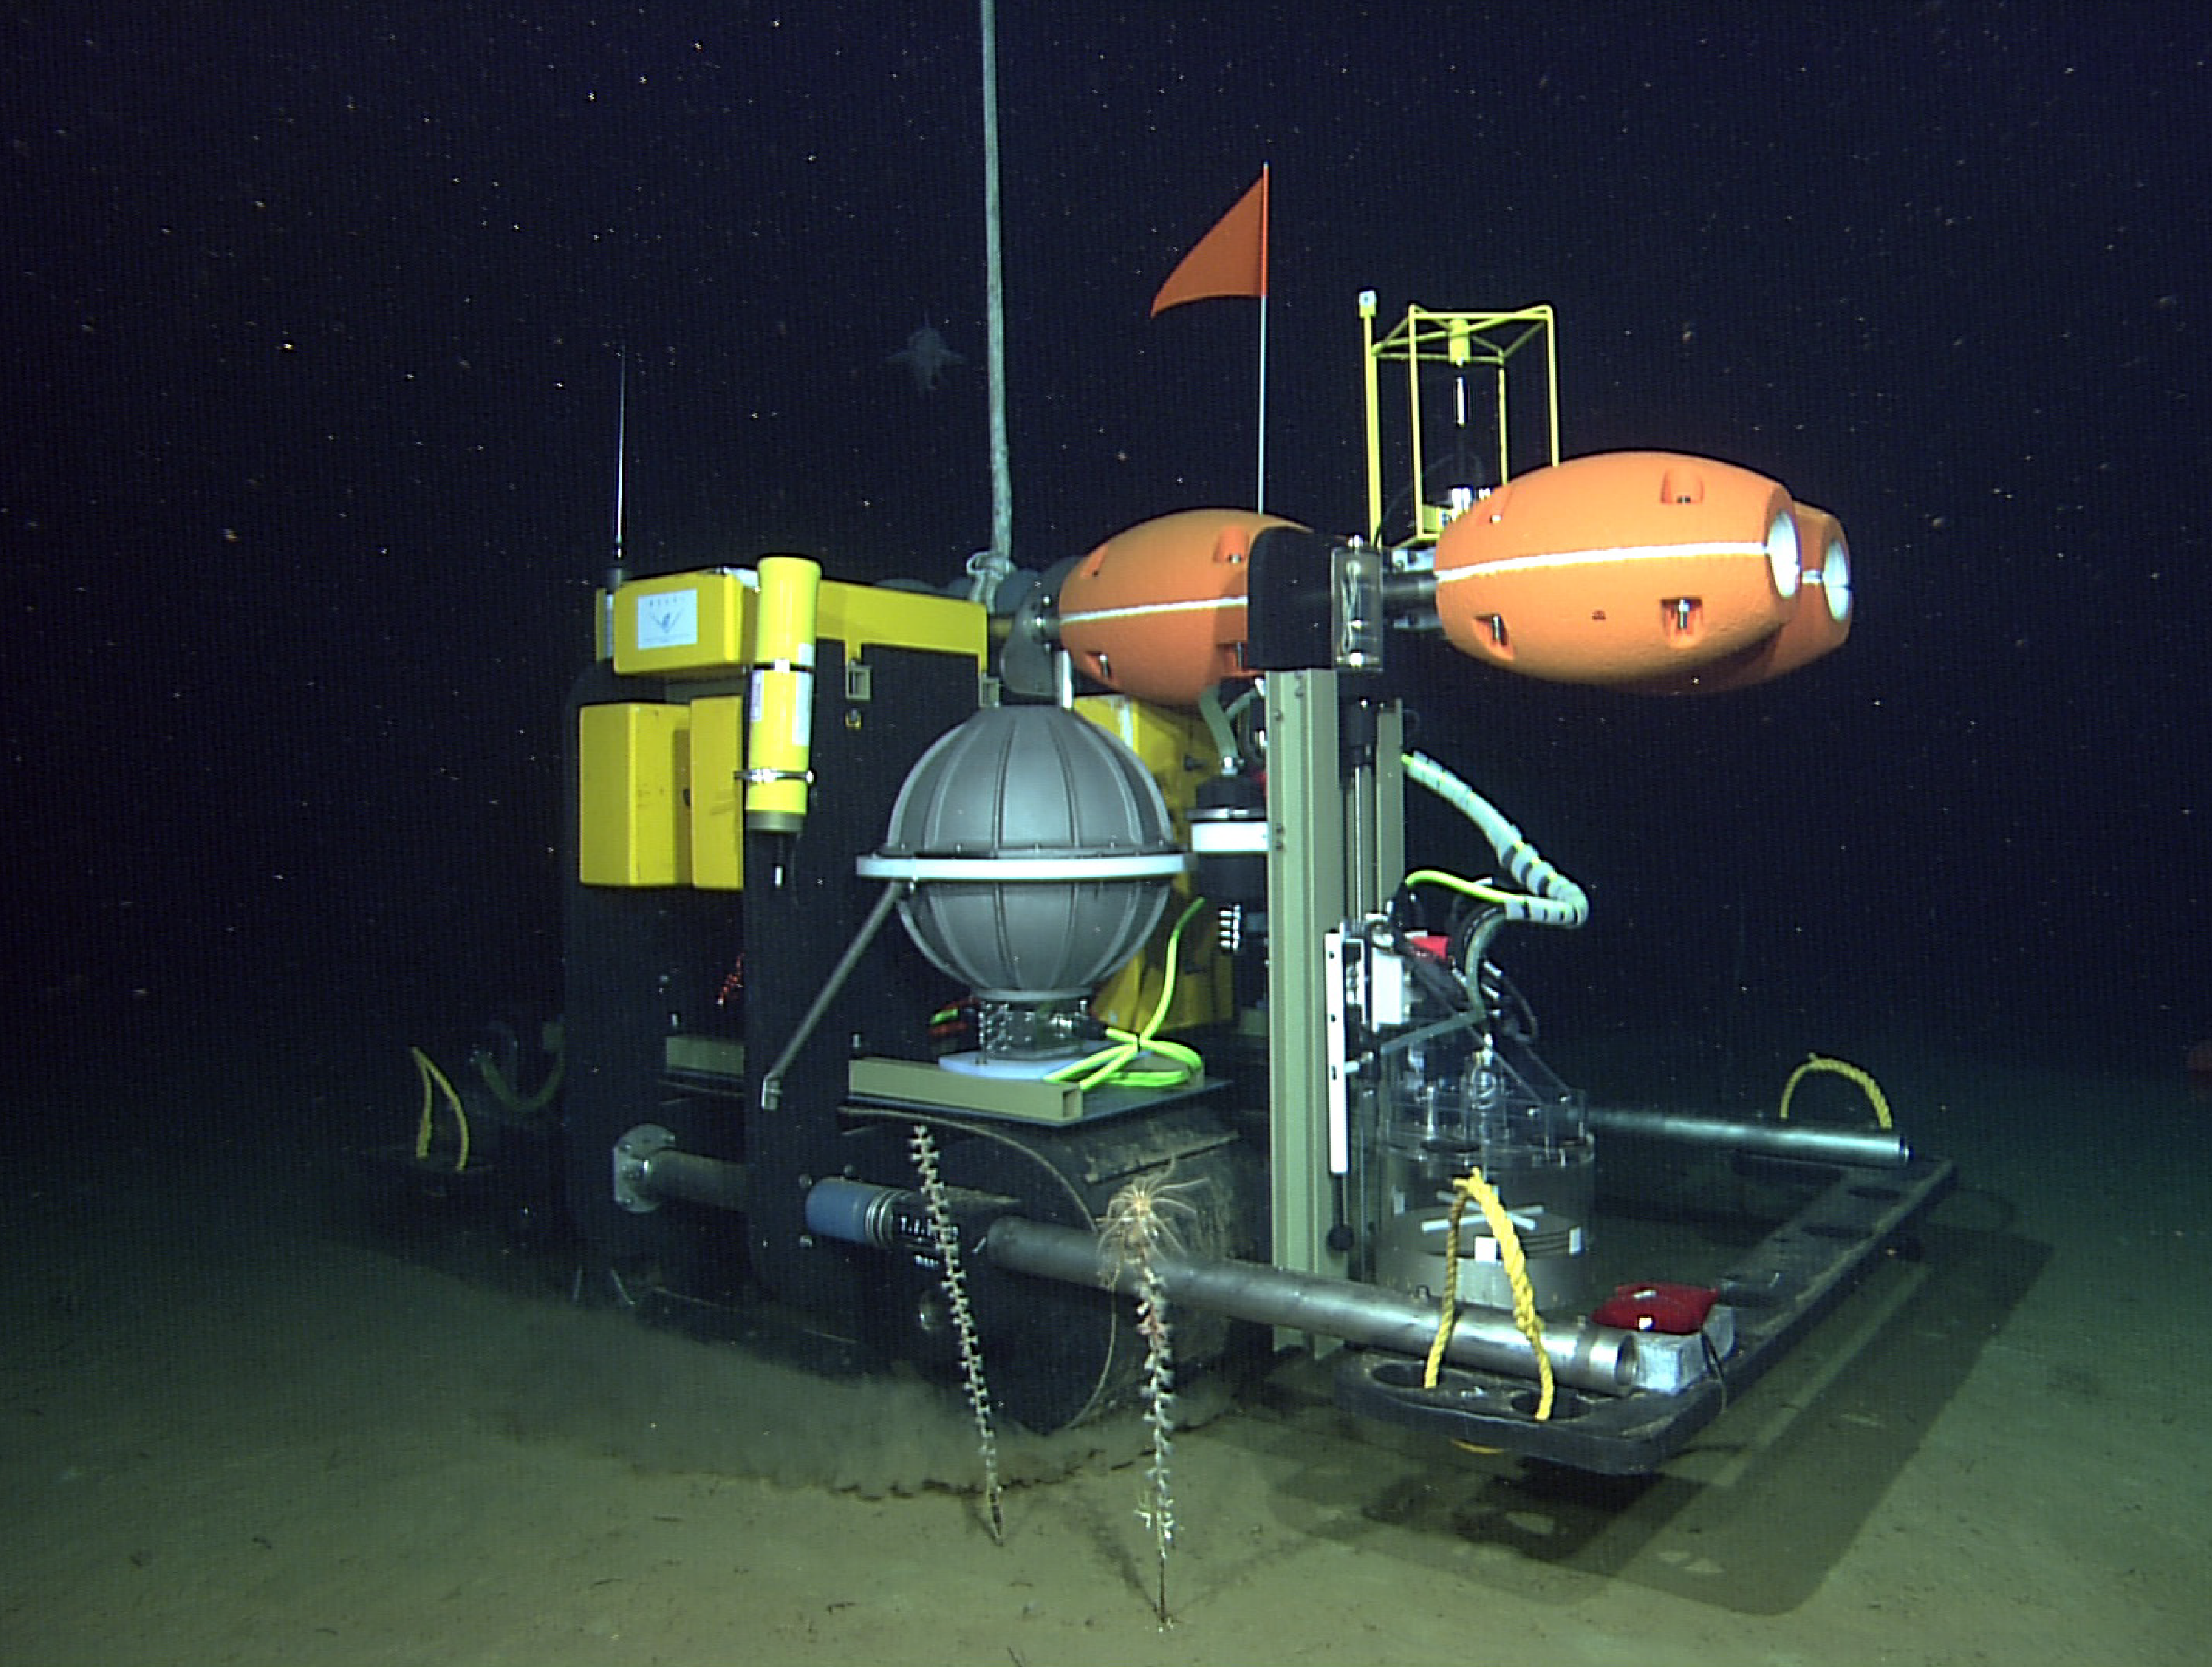 The Benthic Rover on the seafloor. This image is from the Rover's trial run while it was connected to power from a cabled observatory.